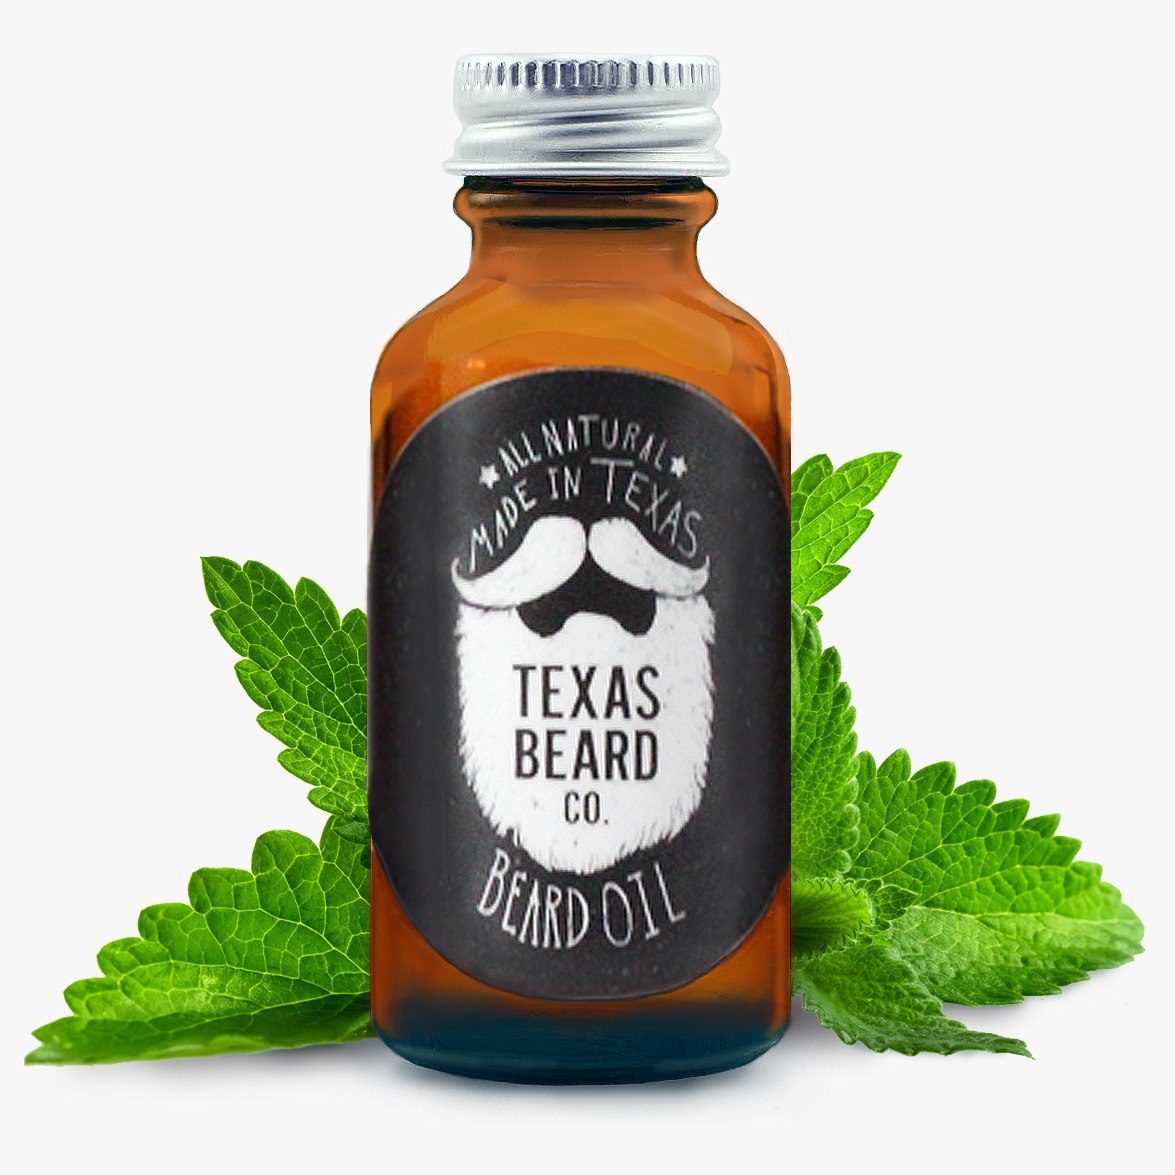 Mint Eucalyptus Beard Oil